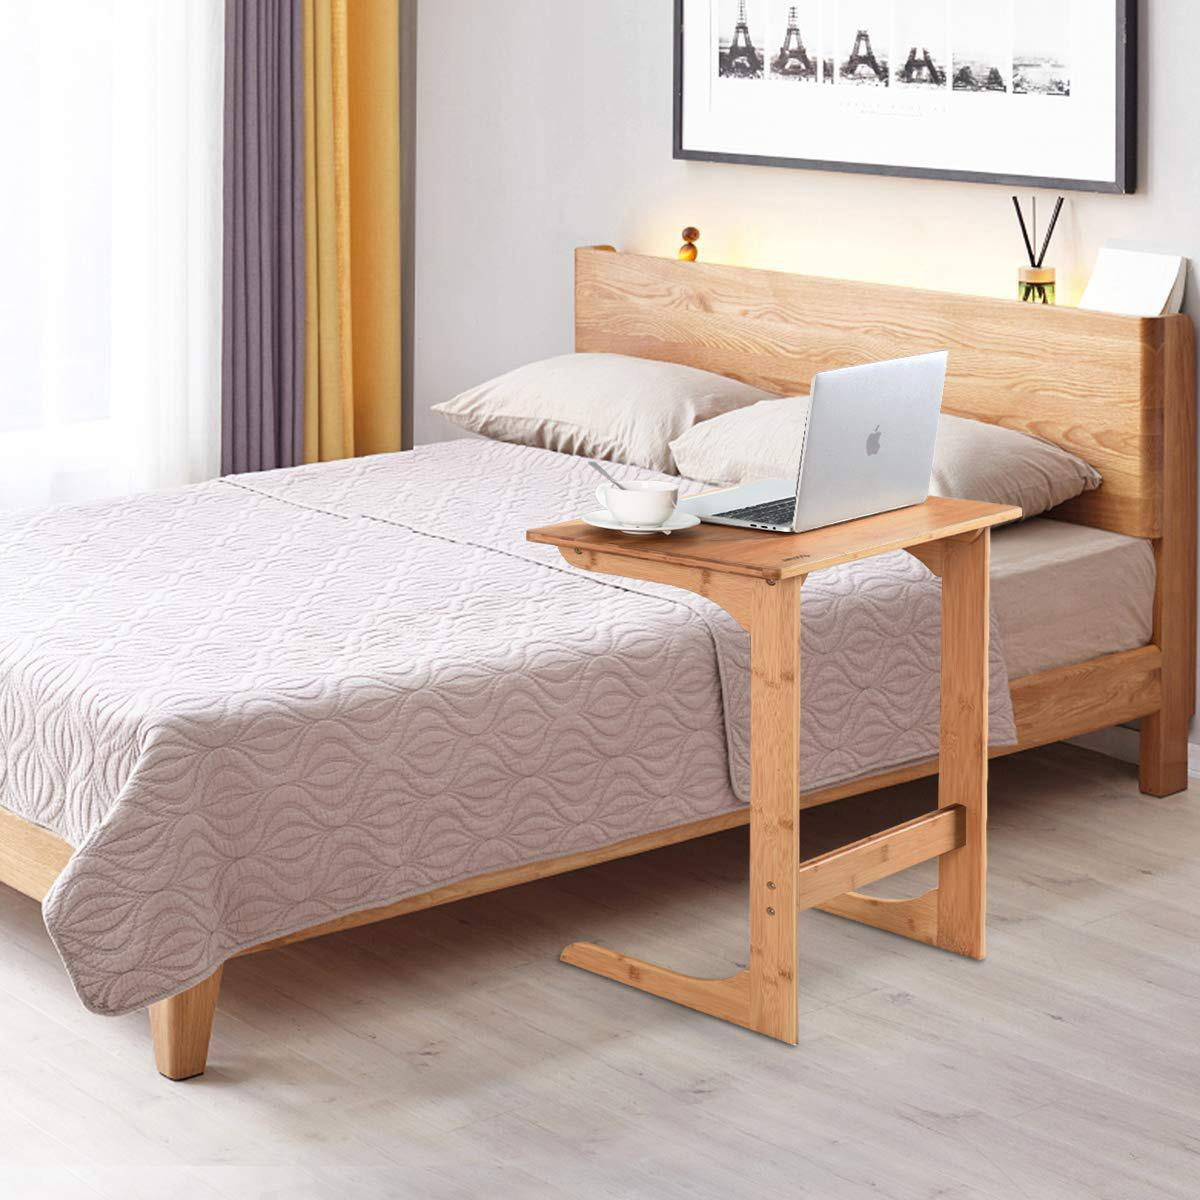 100% High Quality Smooth Finishing Bamboo Multi Functional Side table (Water Resistant)